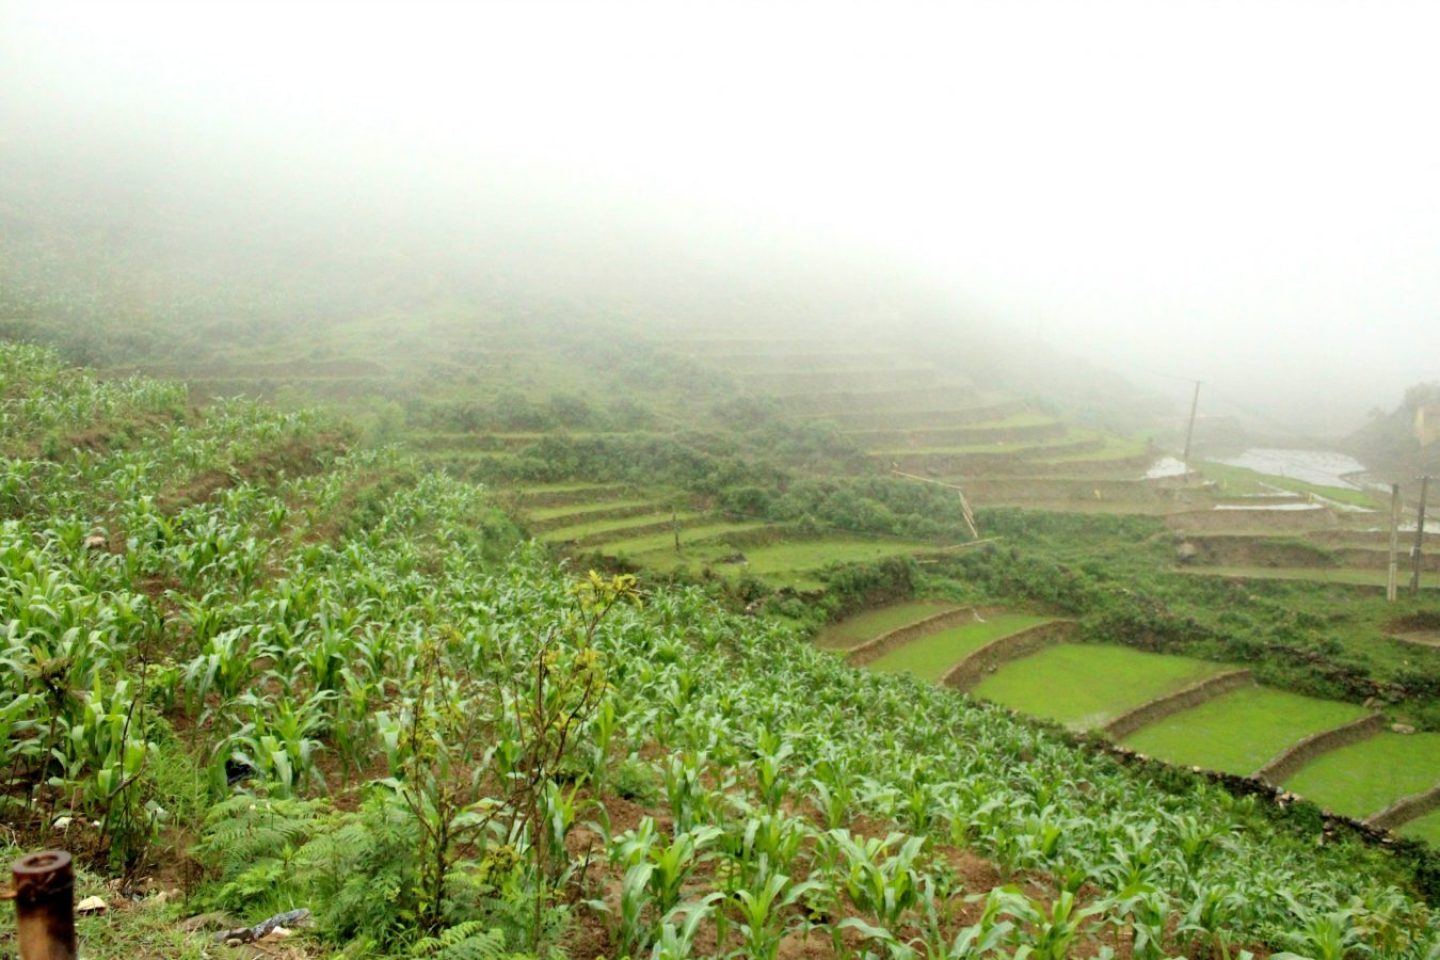 Rice fileds in the fog